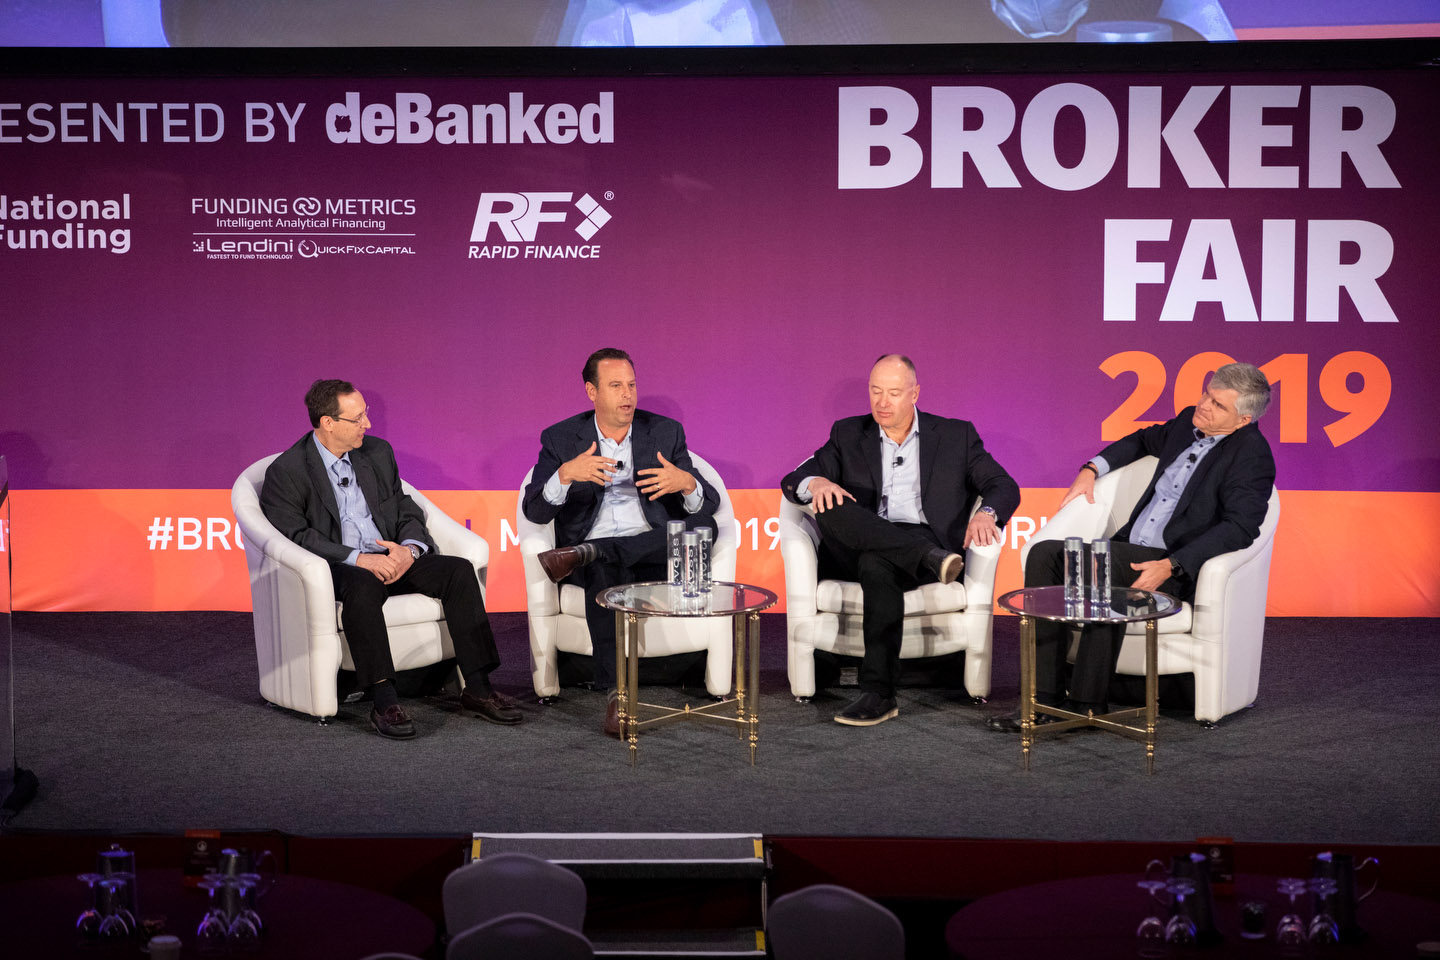 Broker Fair 2019 - Presented by deBanked - 424